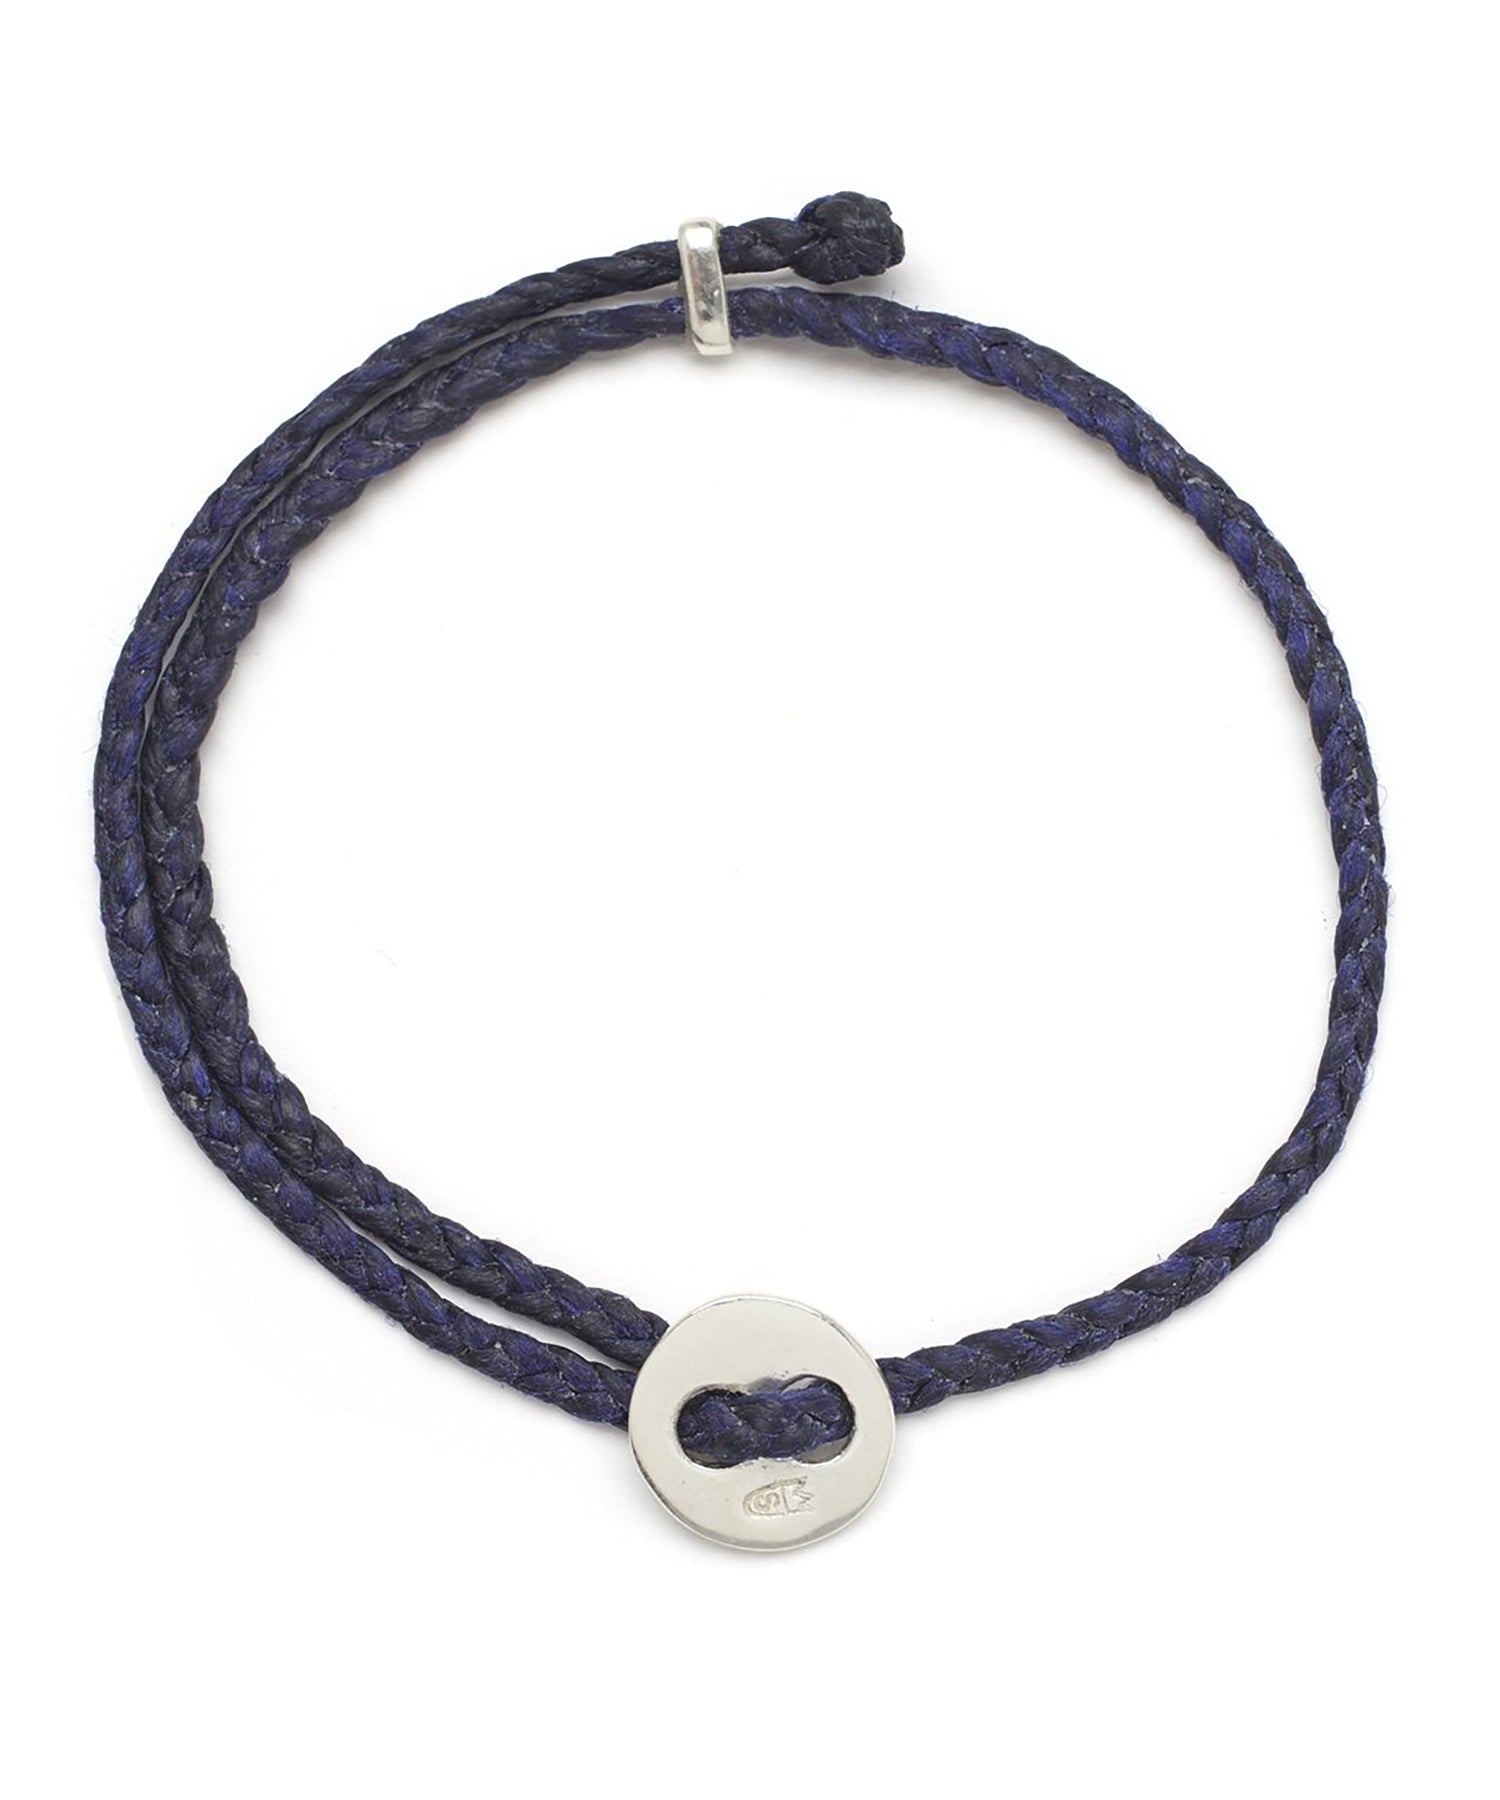 Scosha Signature 4MM Bracelet in Indigo